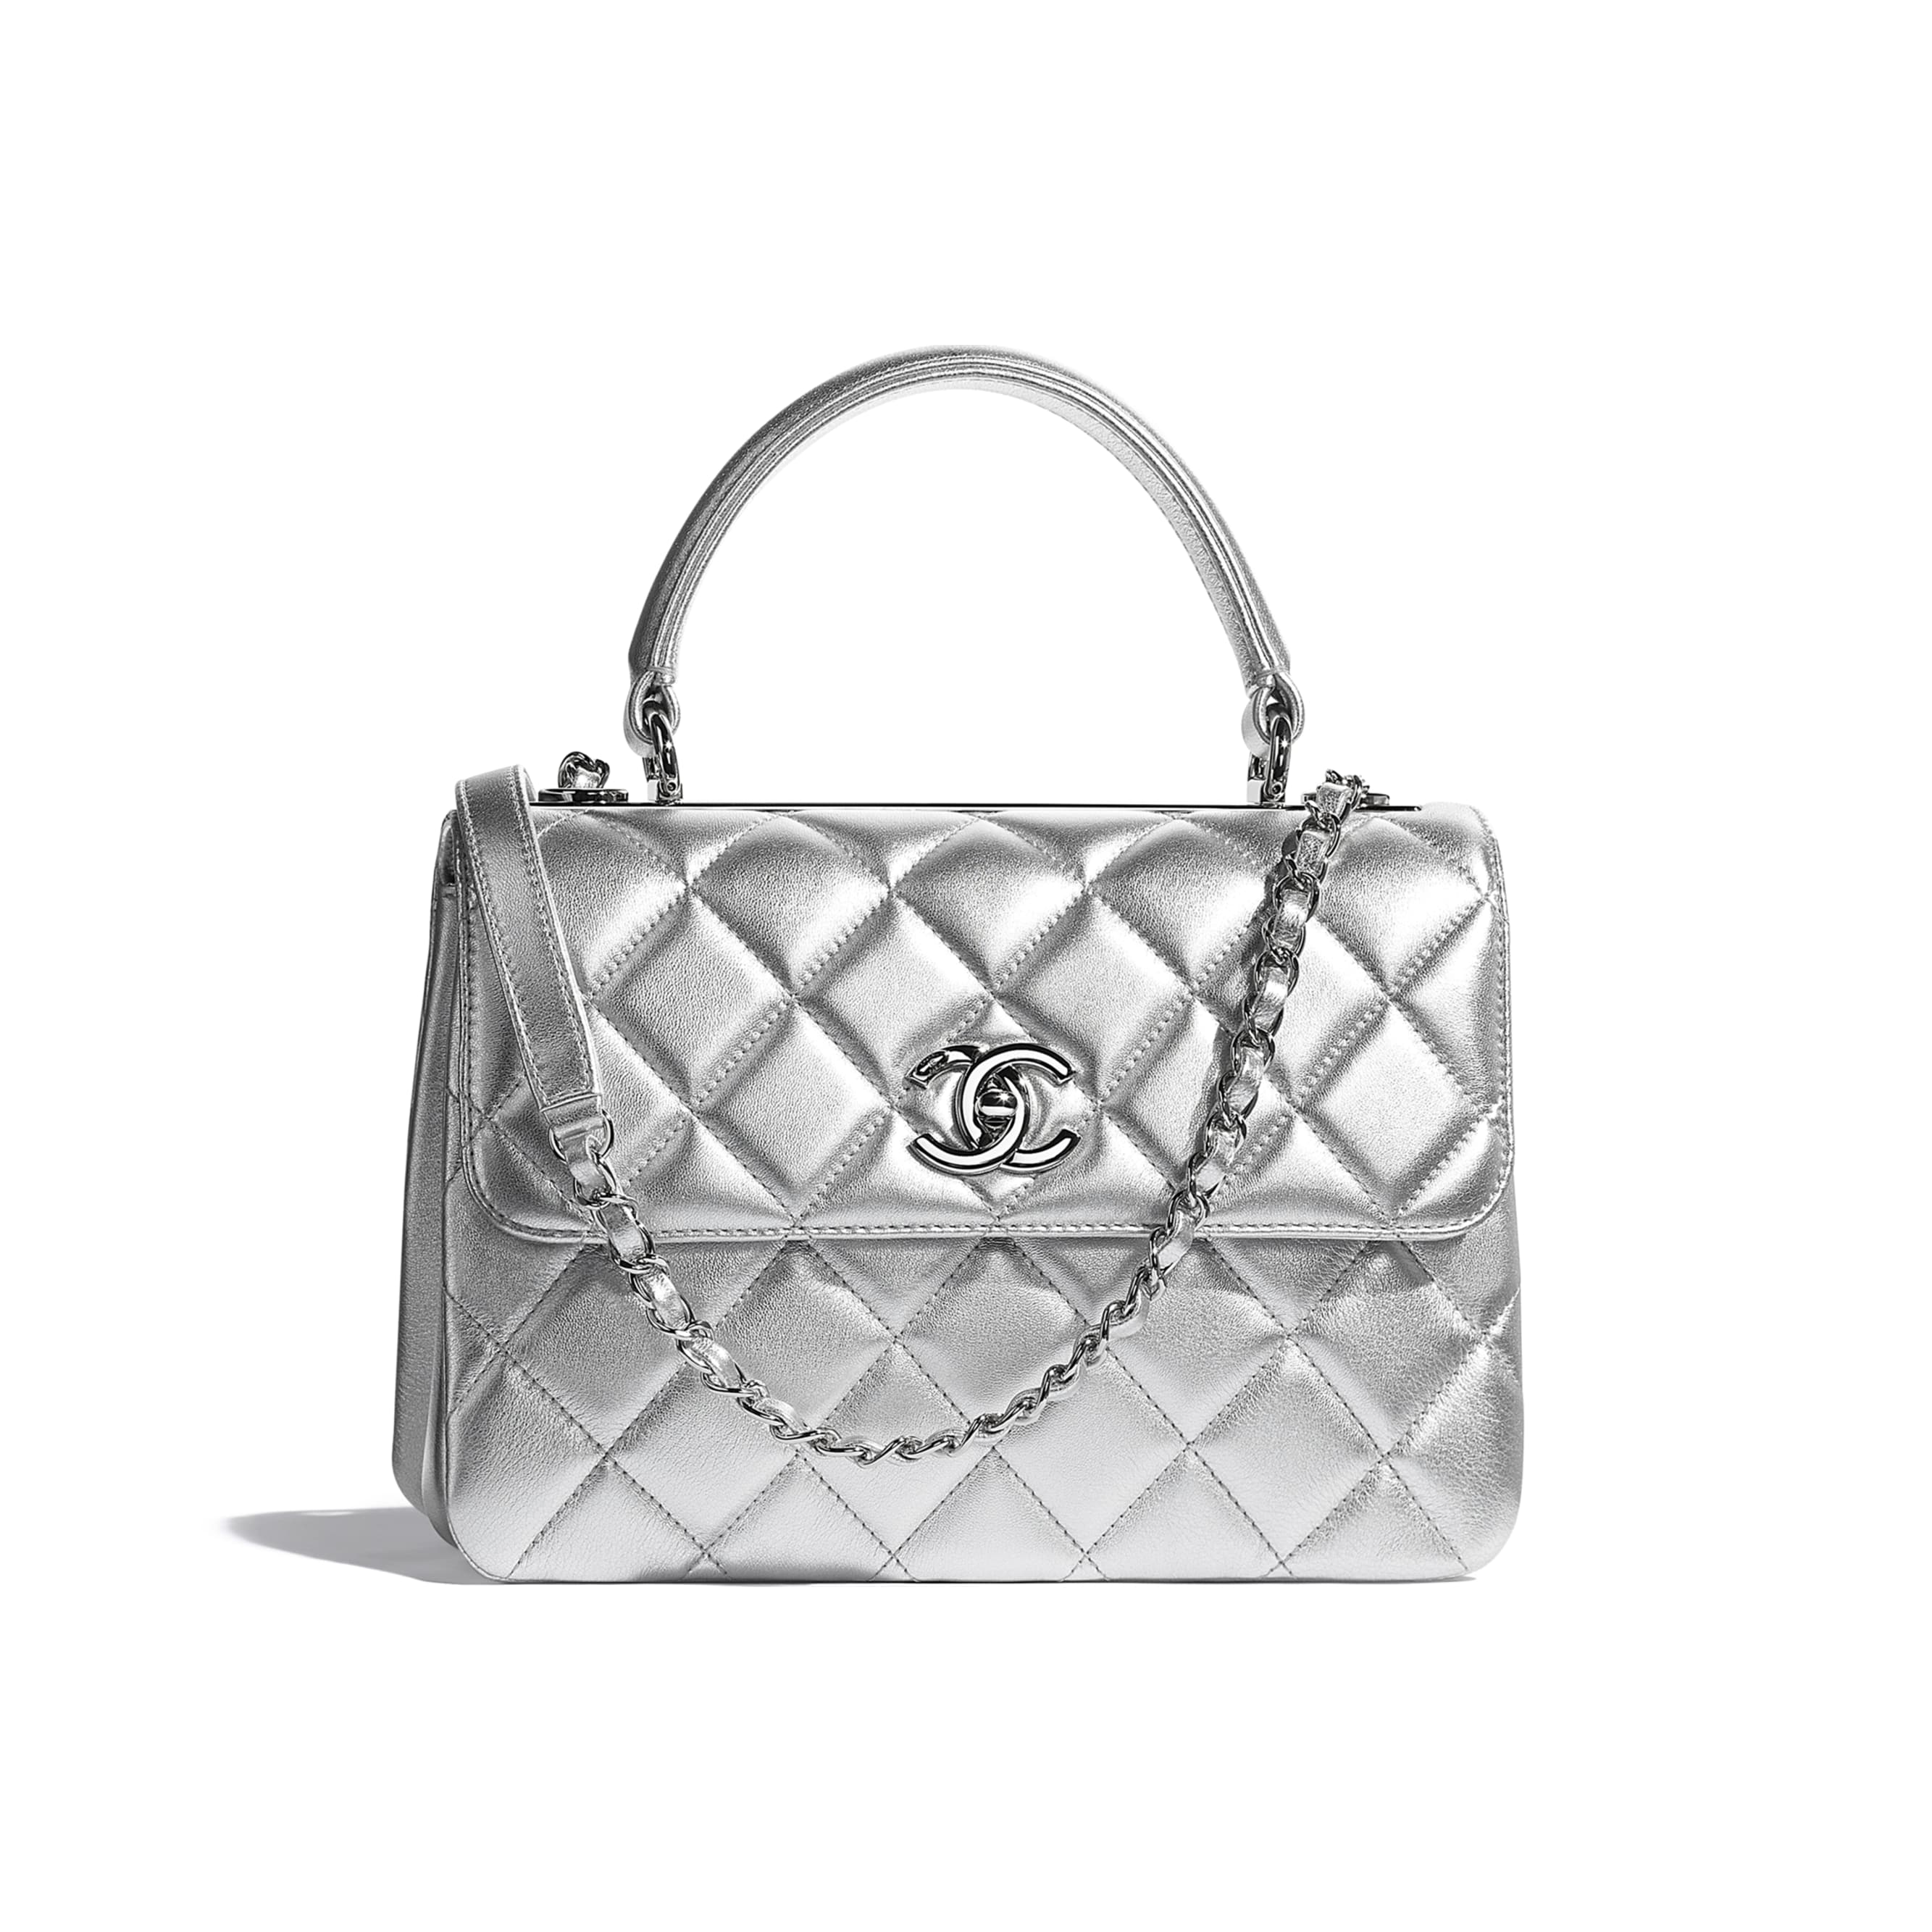 Flap Bag With Top Handle - Silver - Metallic Lambskin & Silver Metal - CHANEL - Default view - see standard sized version